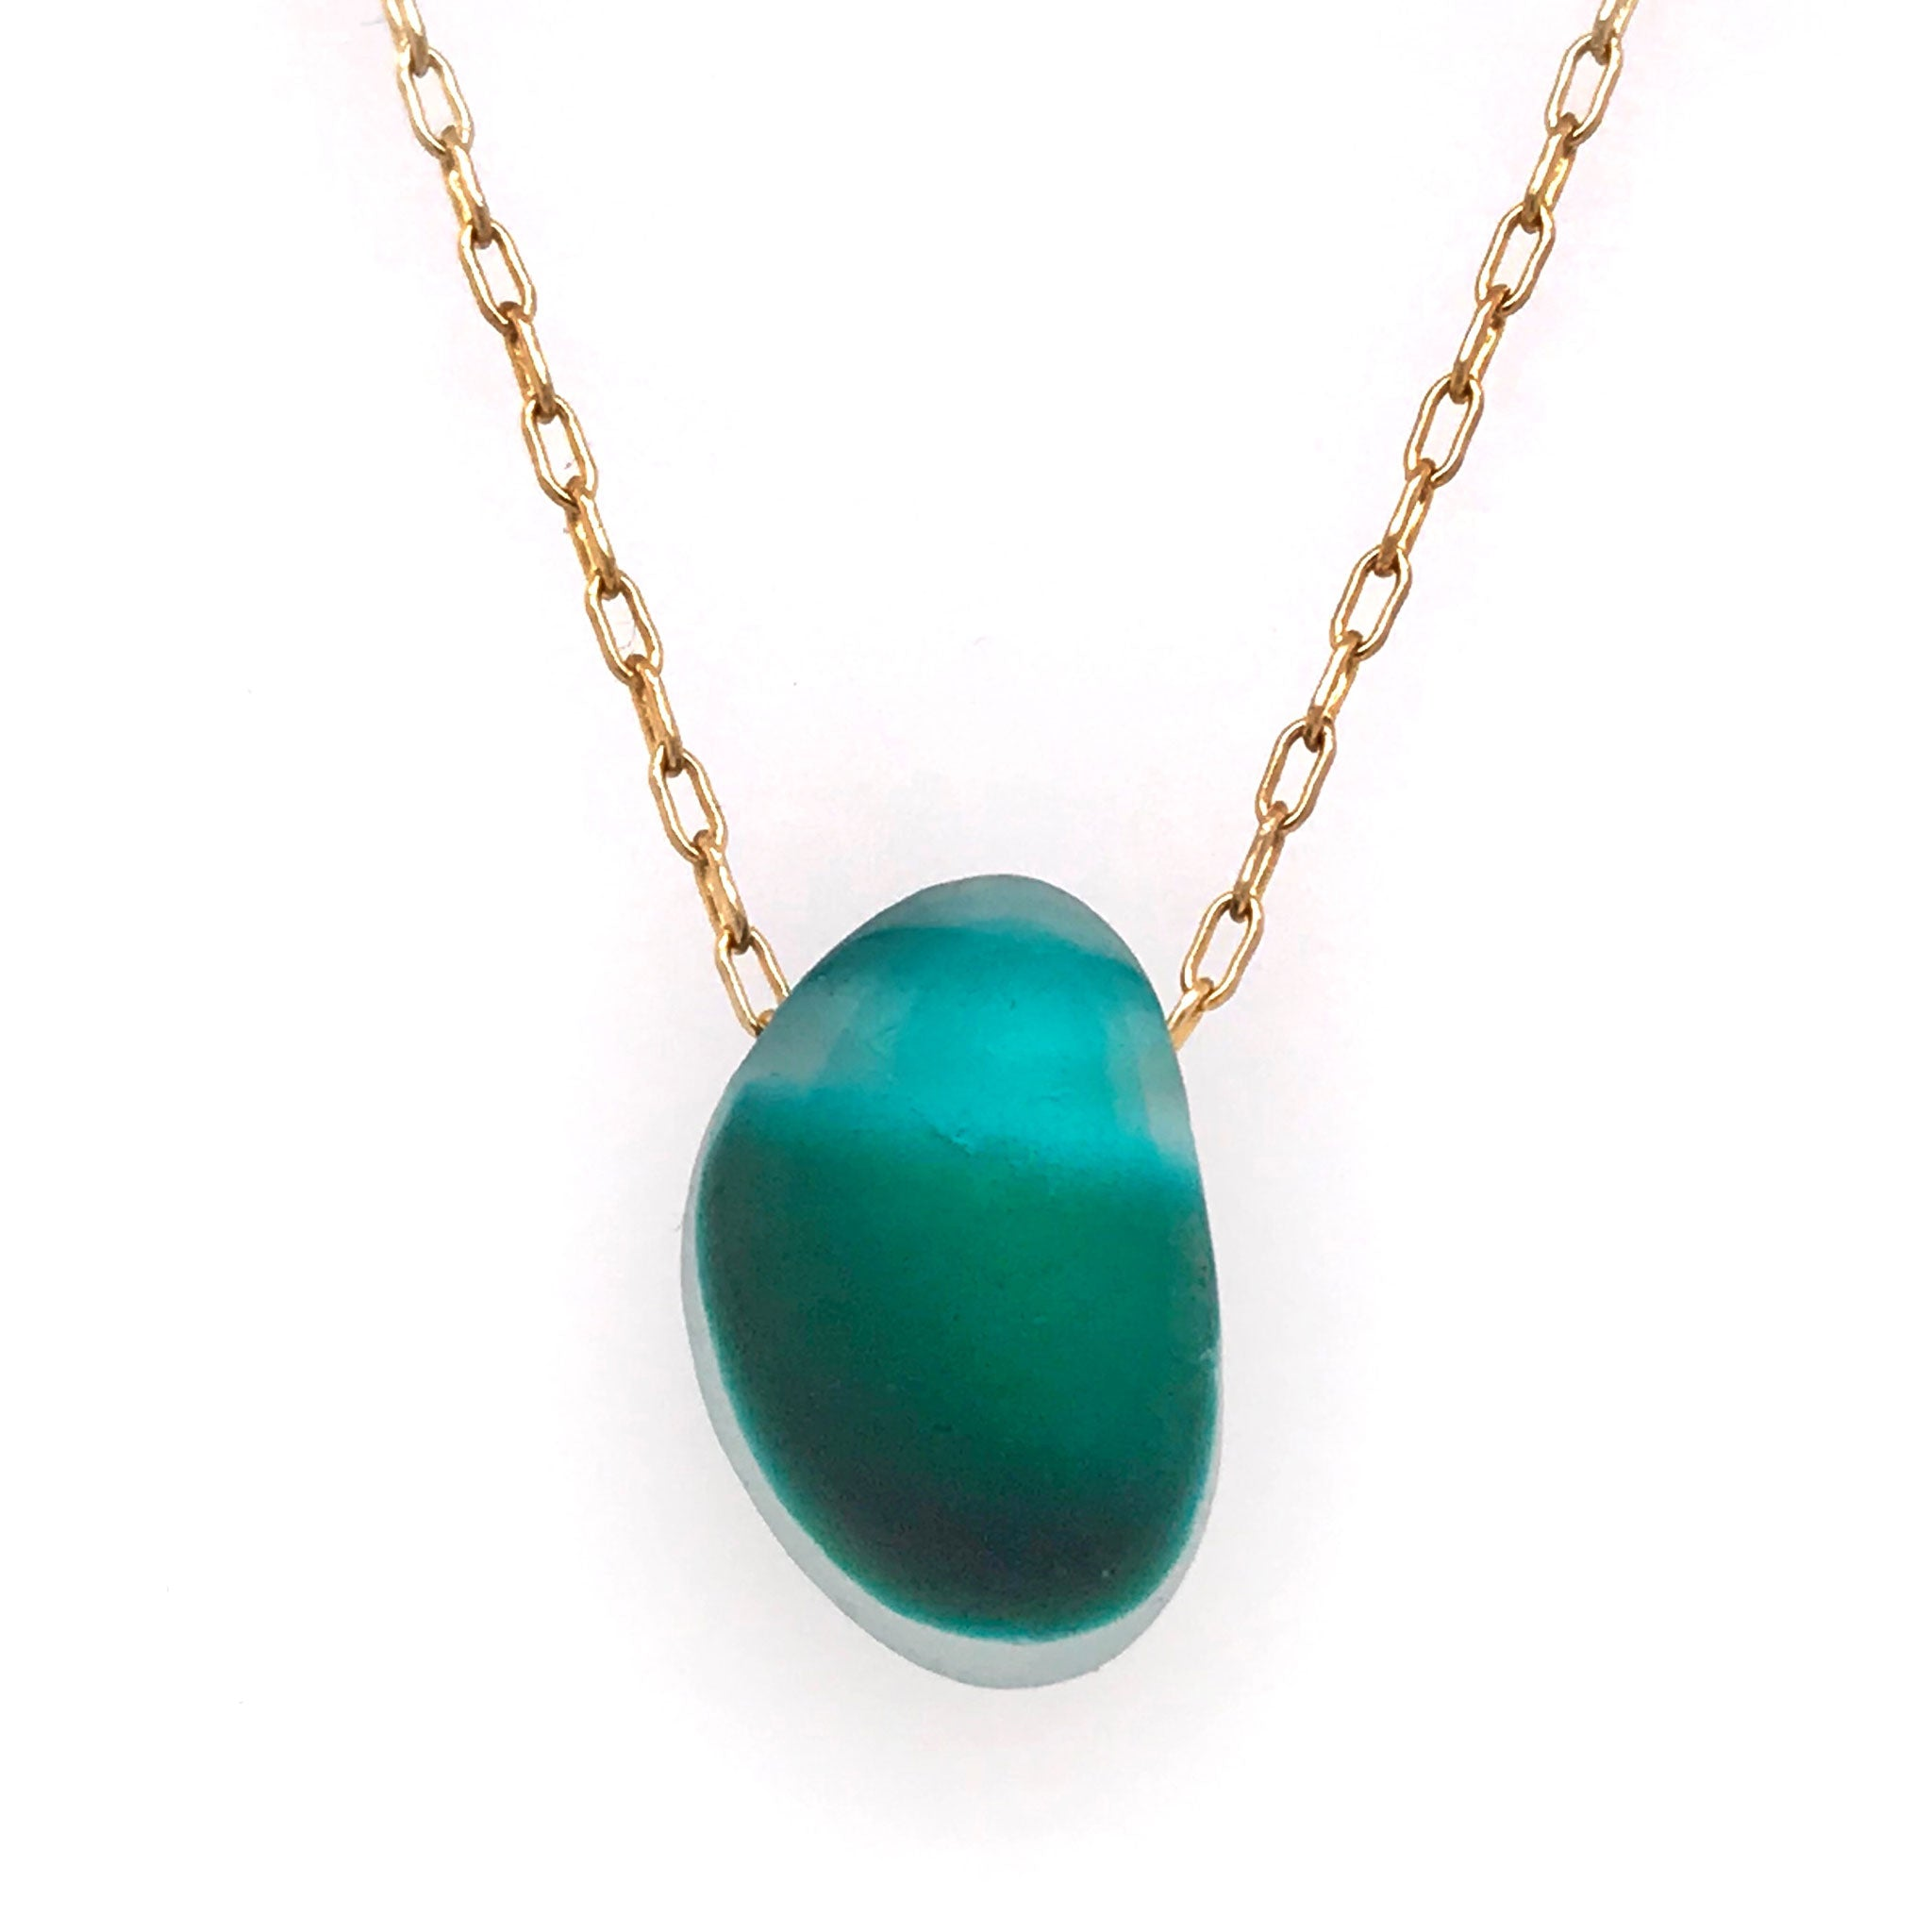 gold necklace with teal and aqua multi-coloured seaglass Kriket Broadhurst jewelry